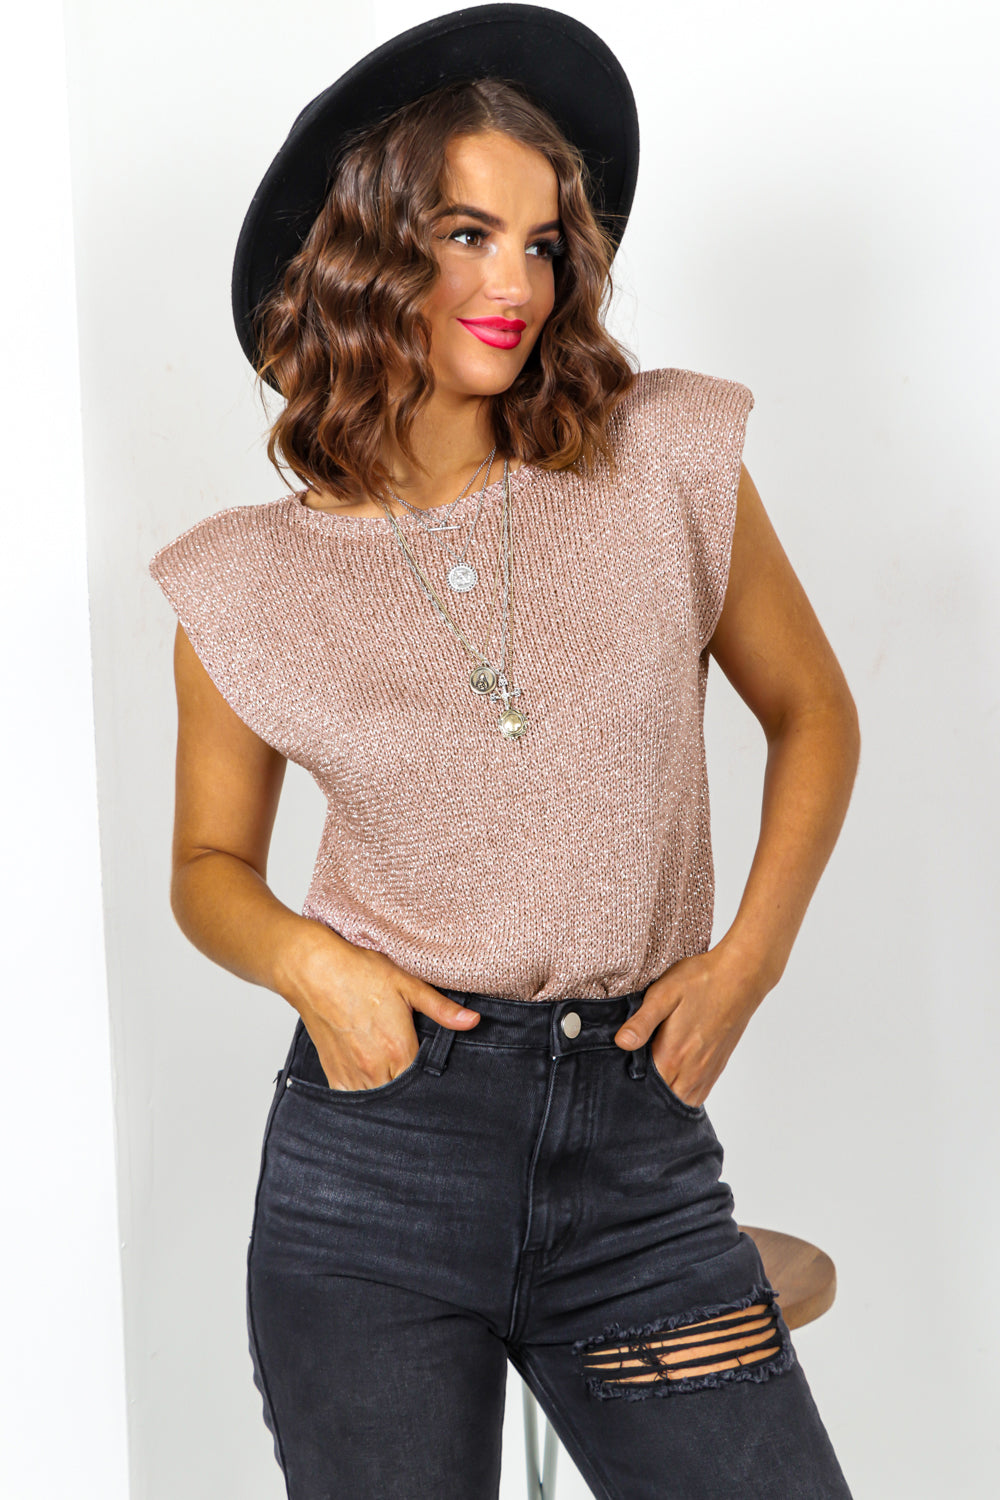 Rose Gold Glitter Knitted Top